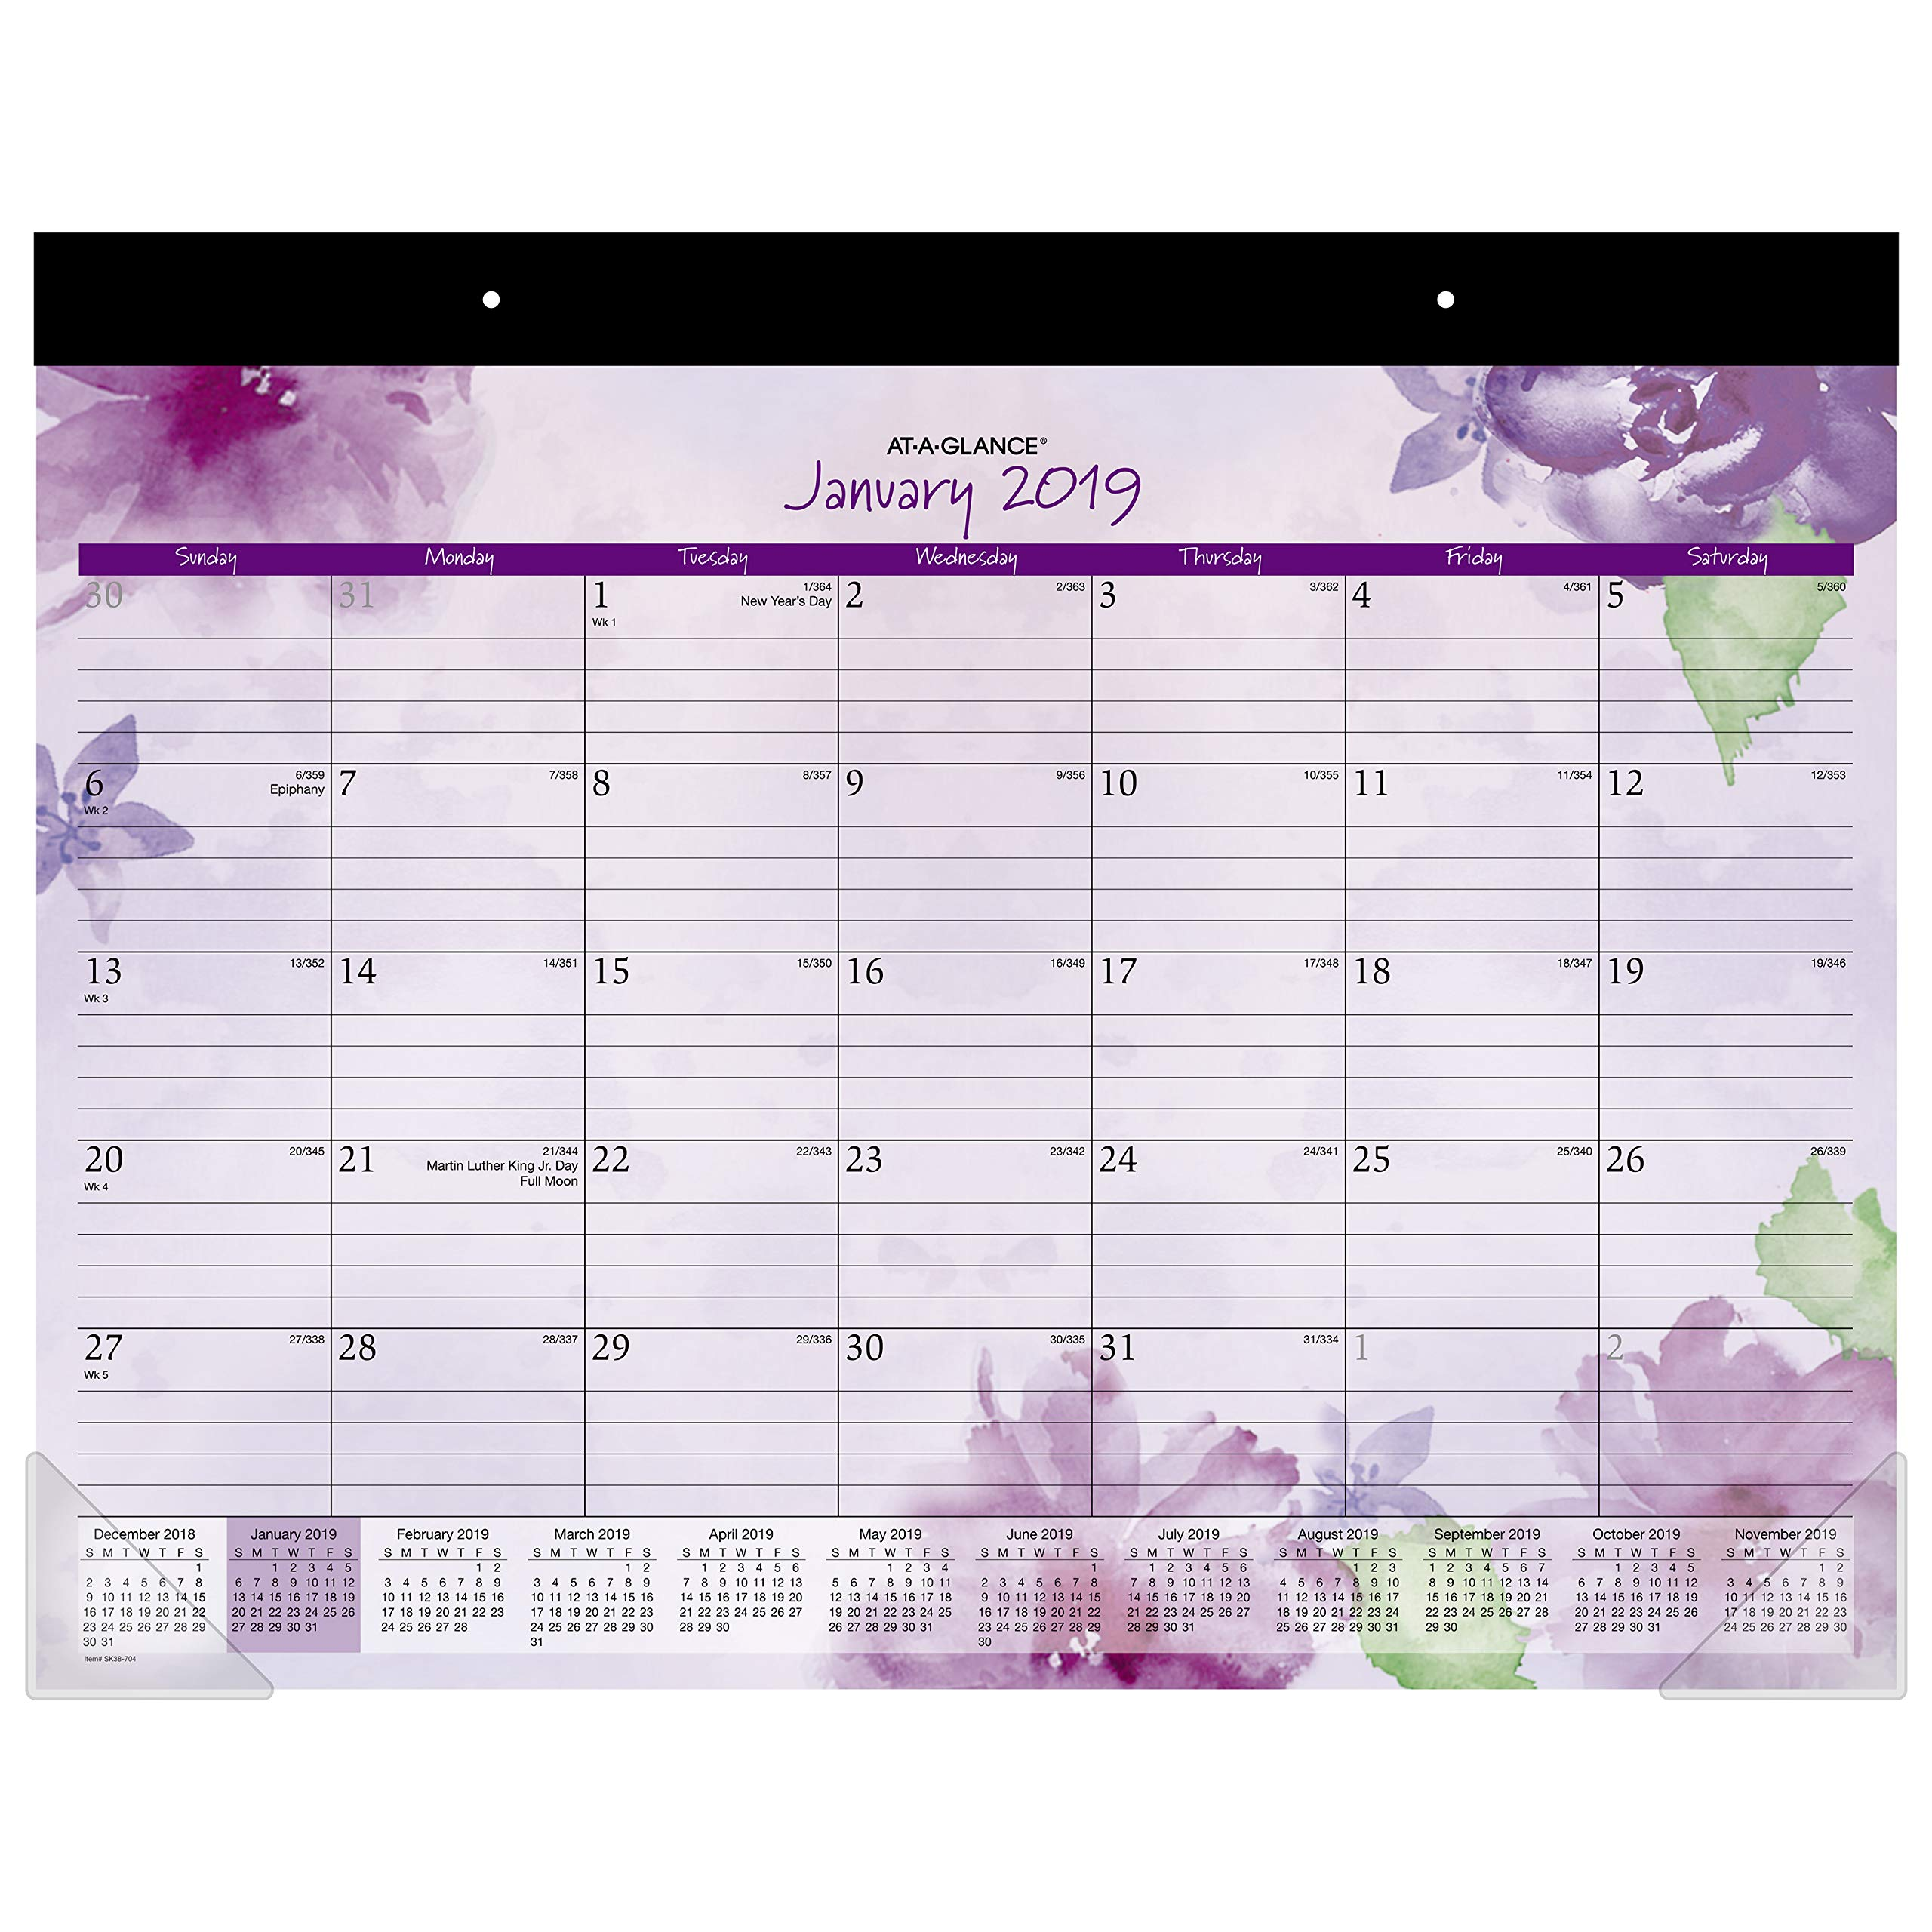 AT-A-GLANCE 2019 Desk Calendar, Desk Pad, 21-3/4'' x 17'', Standard, Beautiful Day, Lavender (SK38-704) by AT-A-GLANCE